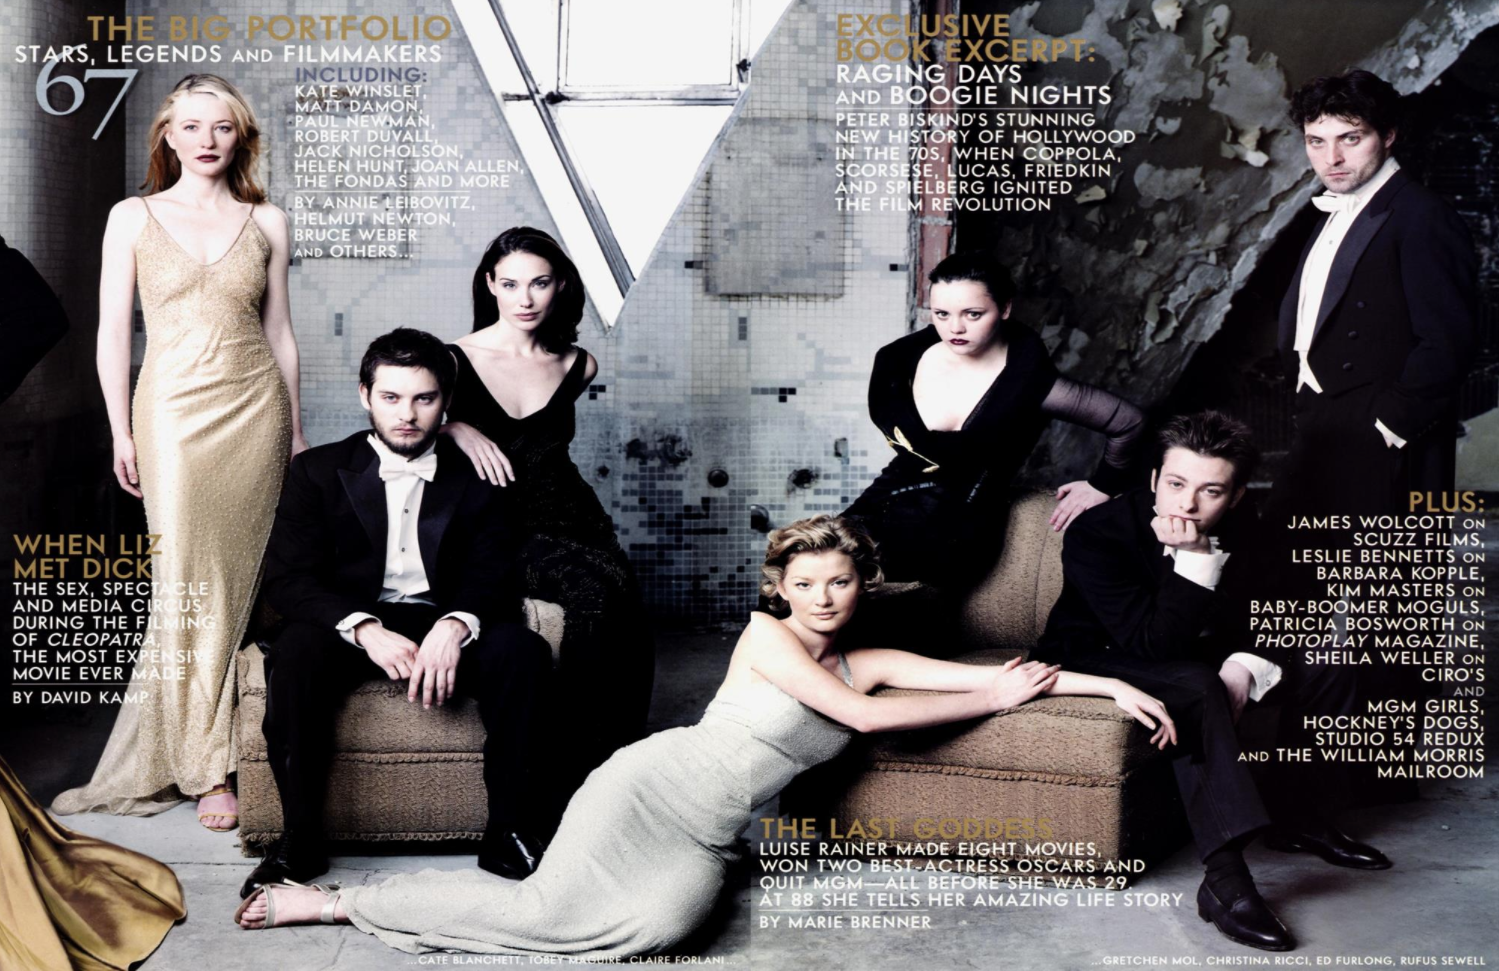 Curio Viola And Firsts On Vanity Fair Covers Blog The Film Experience